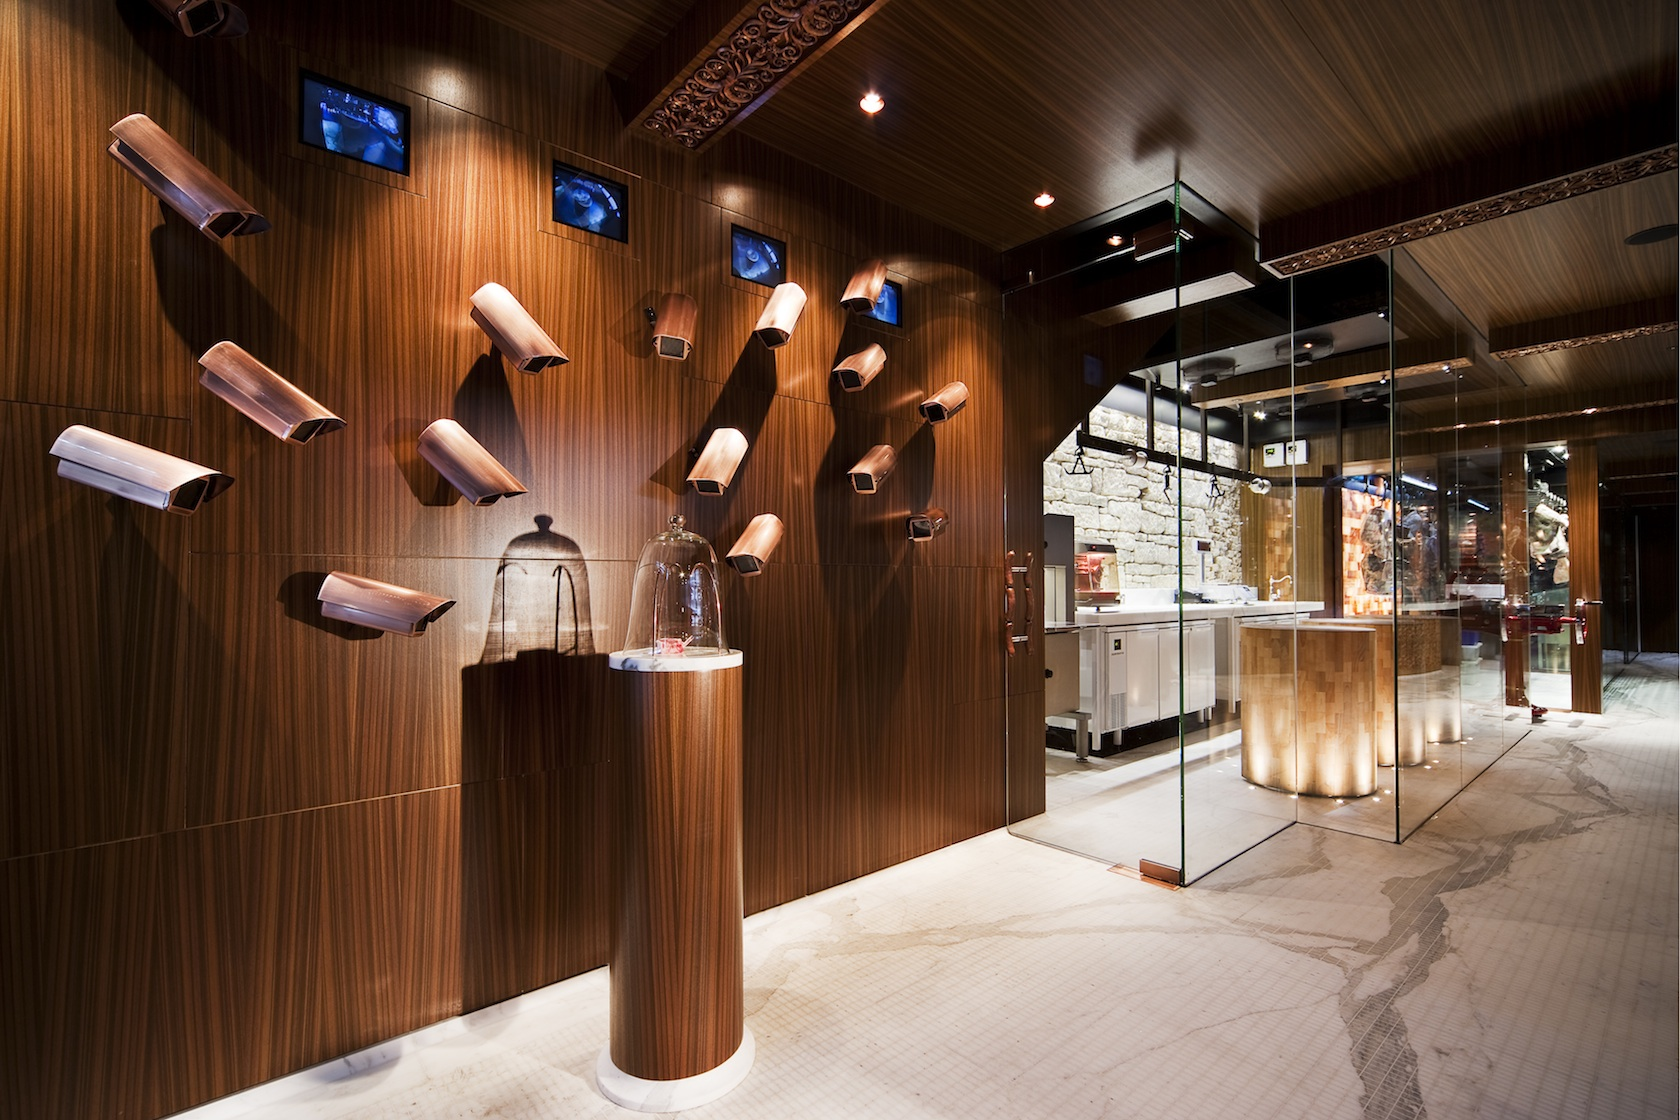 Victor churchill butchery beebo constructions award for Experiential design sydney